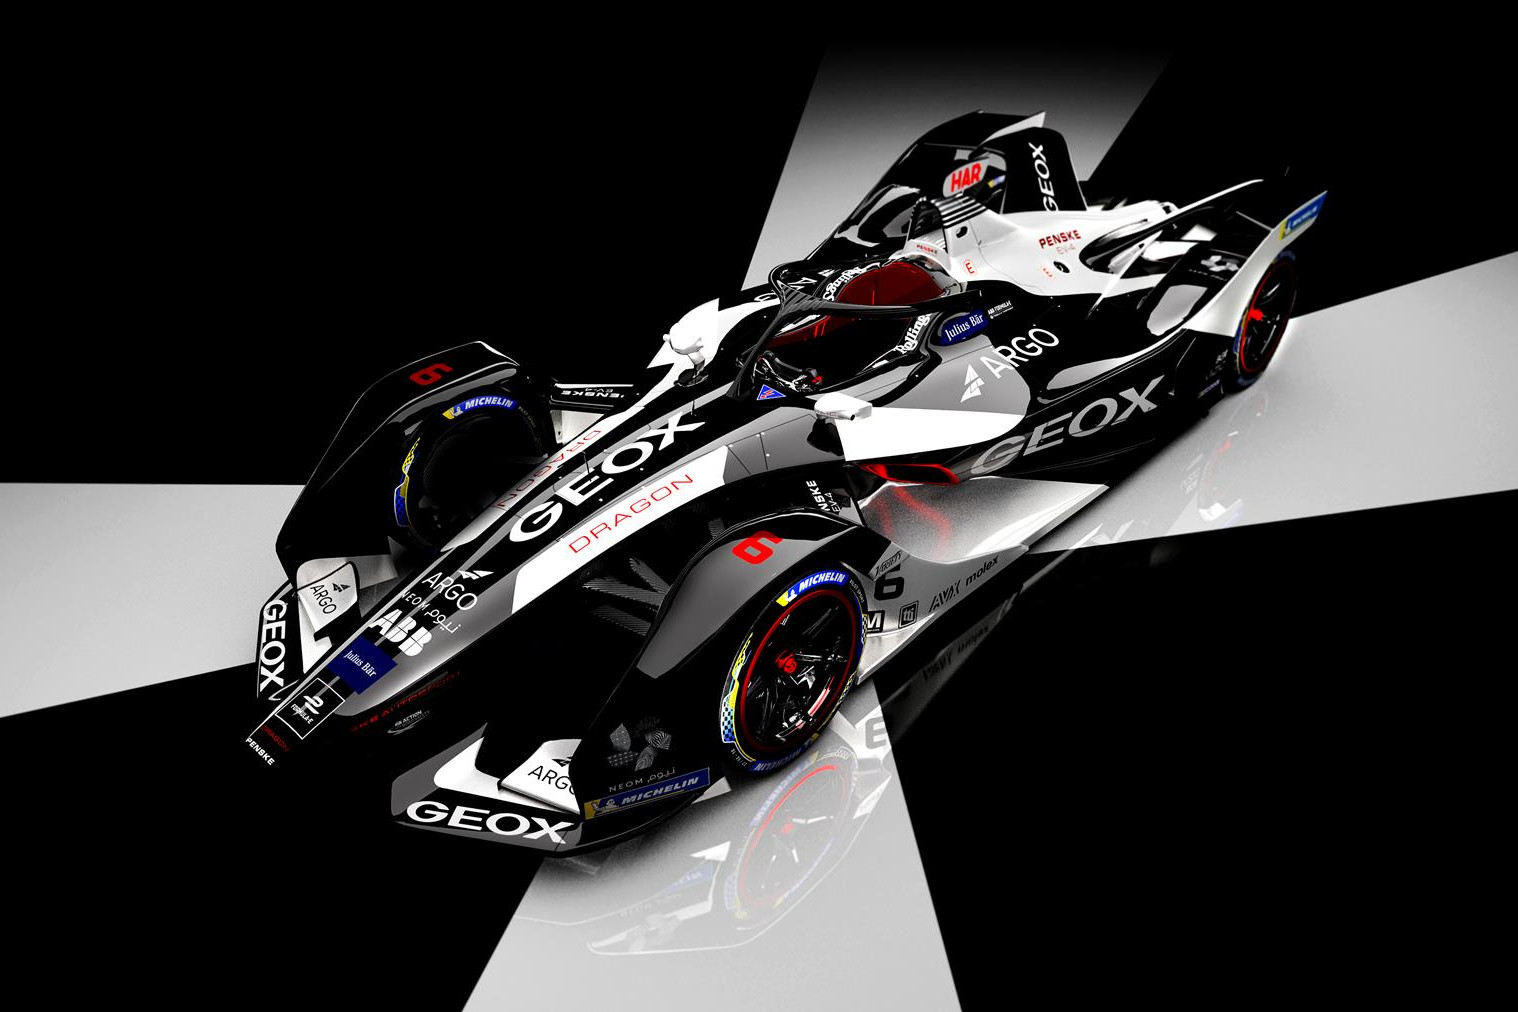 Geox-Dragon-Livery-Black-White-Season-6-2019